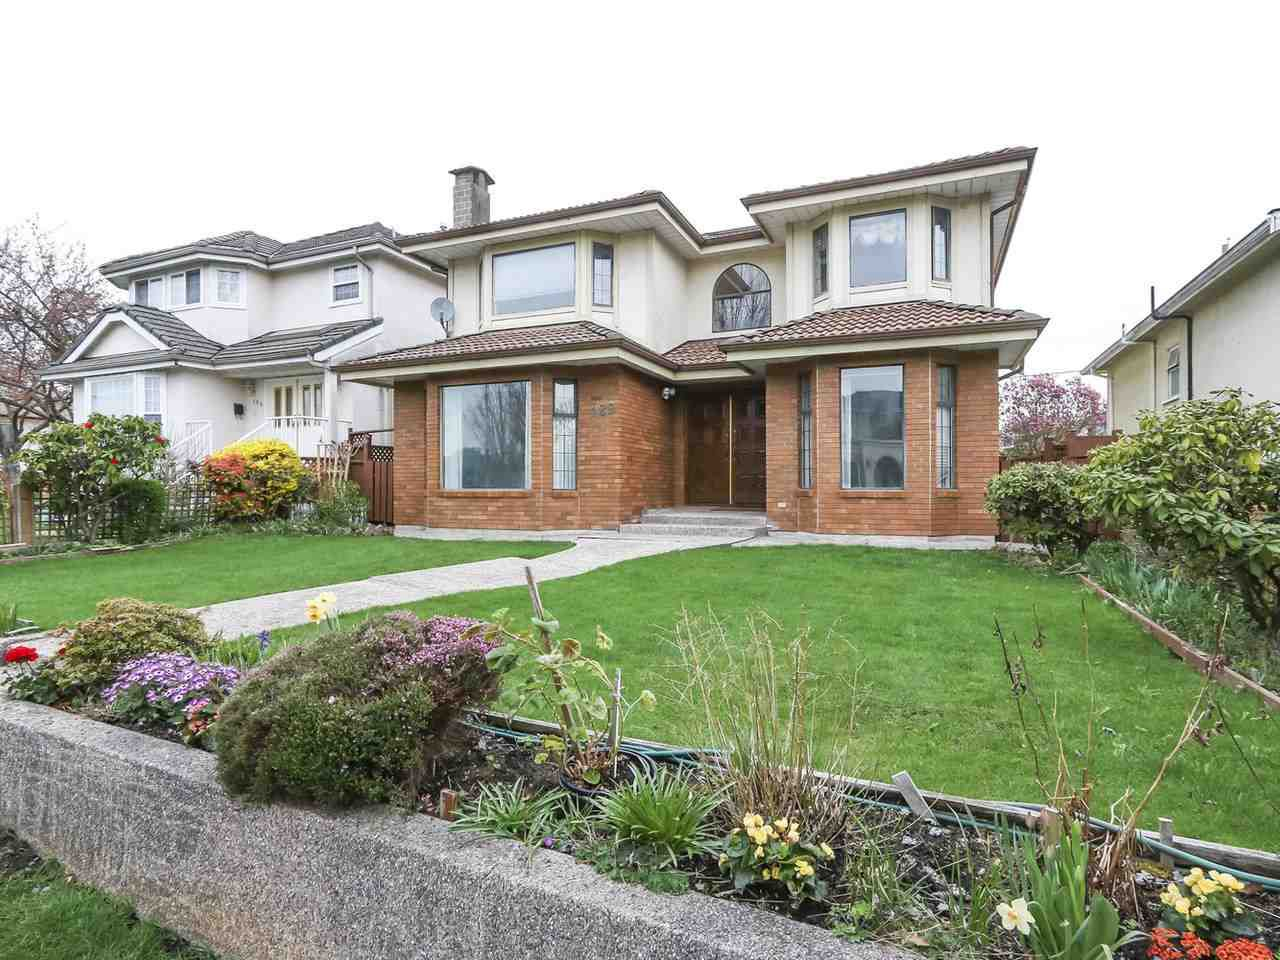 Main Photo: 189 W 46TH Avenue in Vancouver: Oakridge VW House for sale (Vancouver West)  : MLS®# R2356639